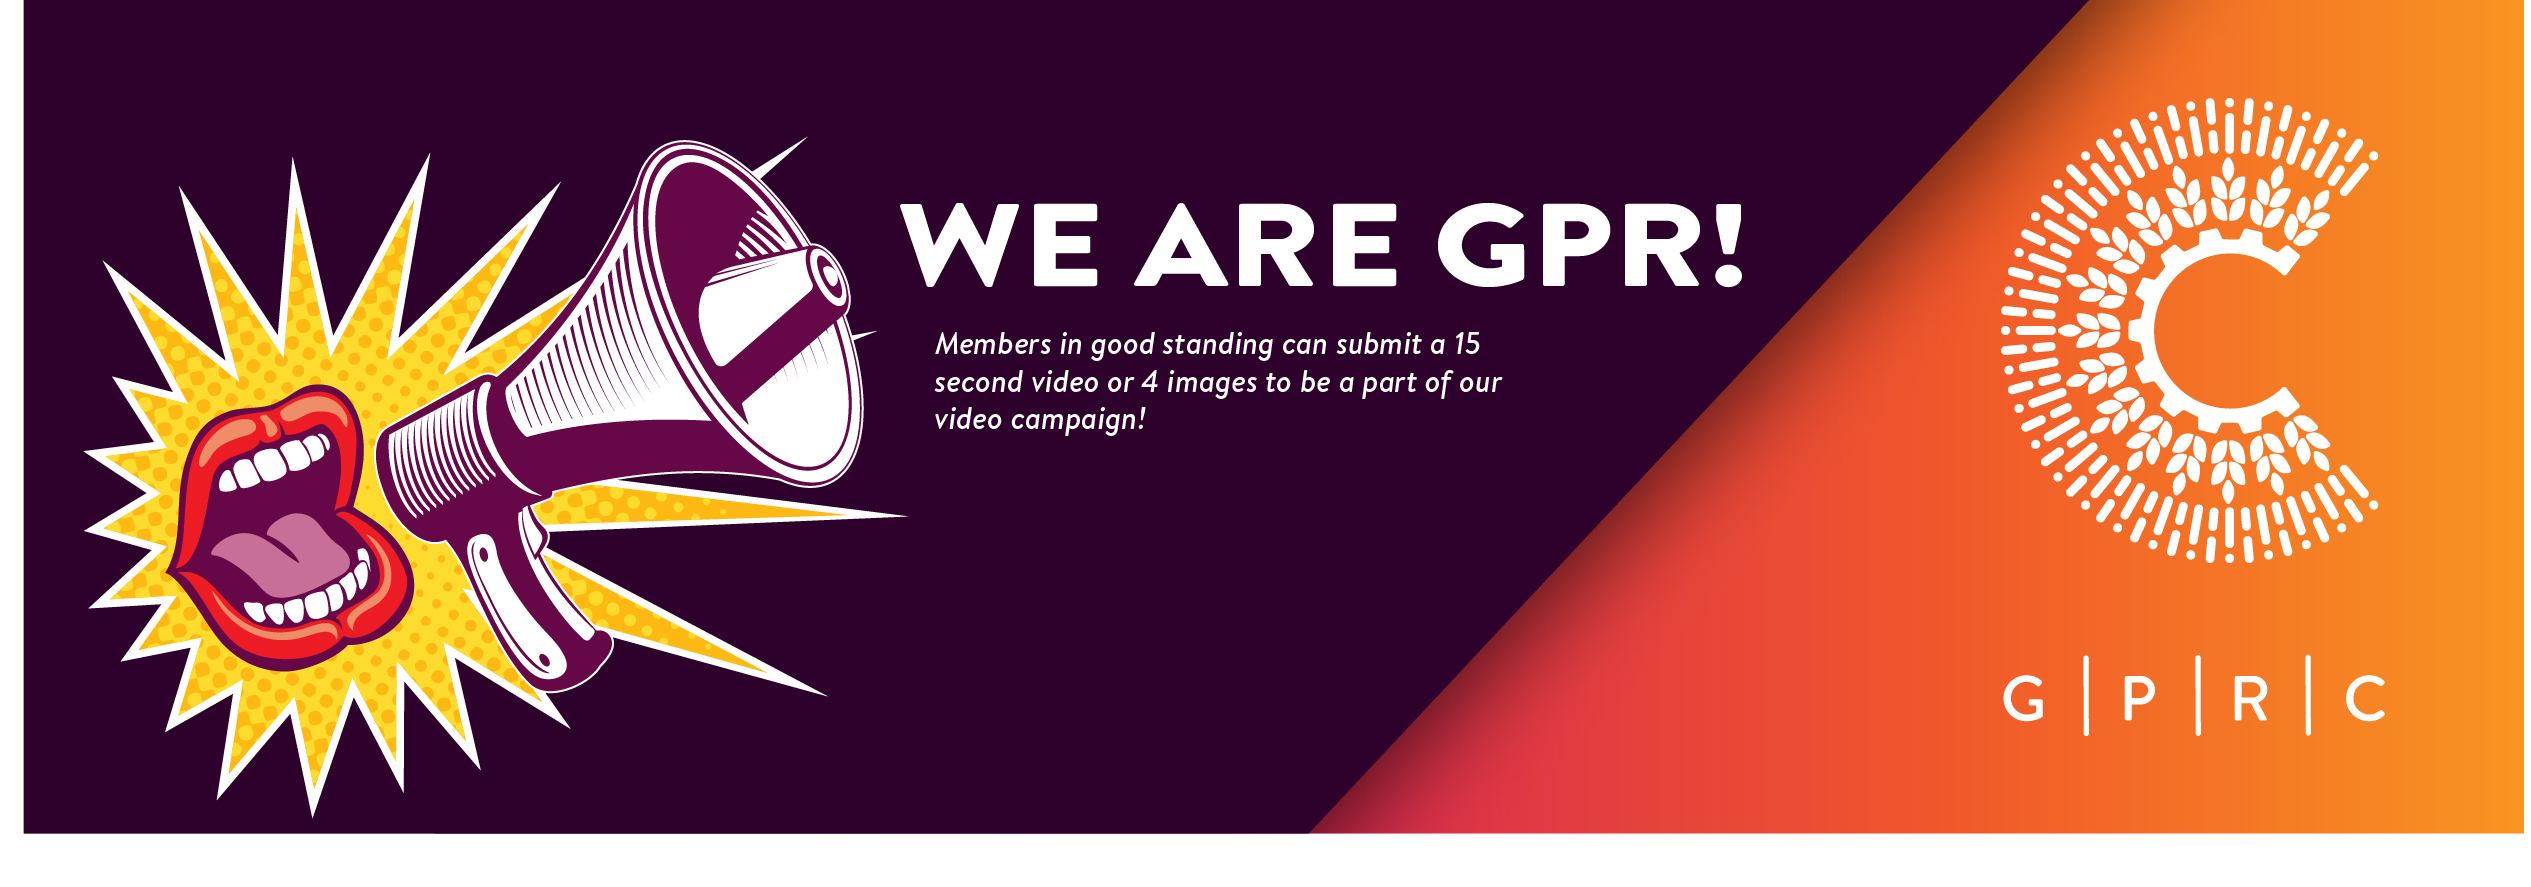 We Are GPR